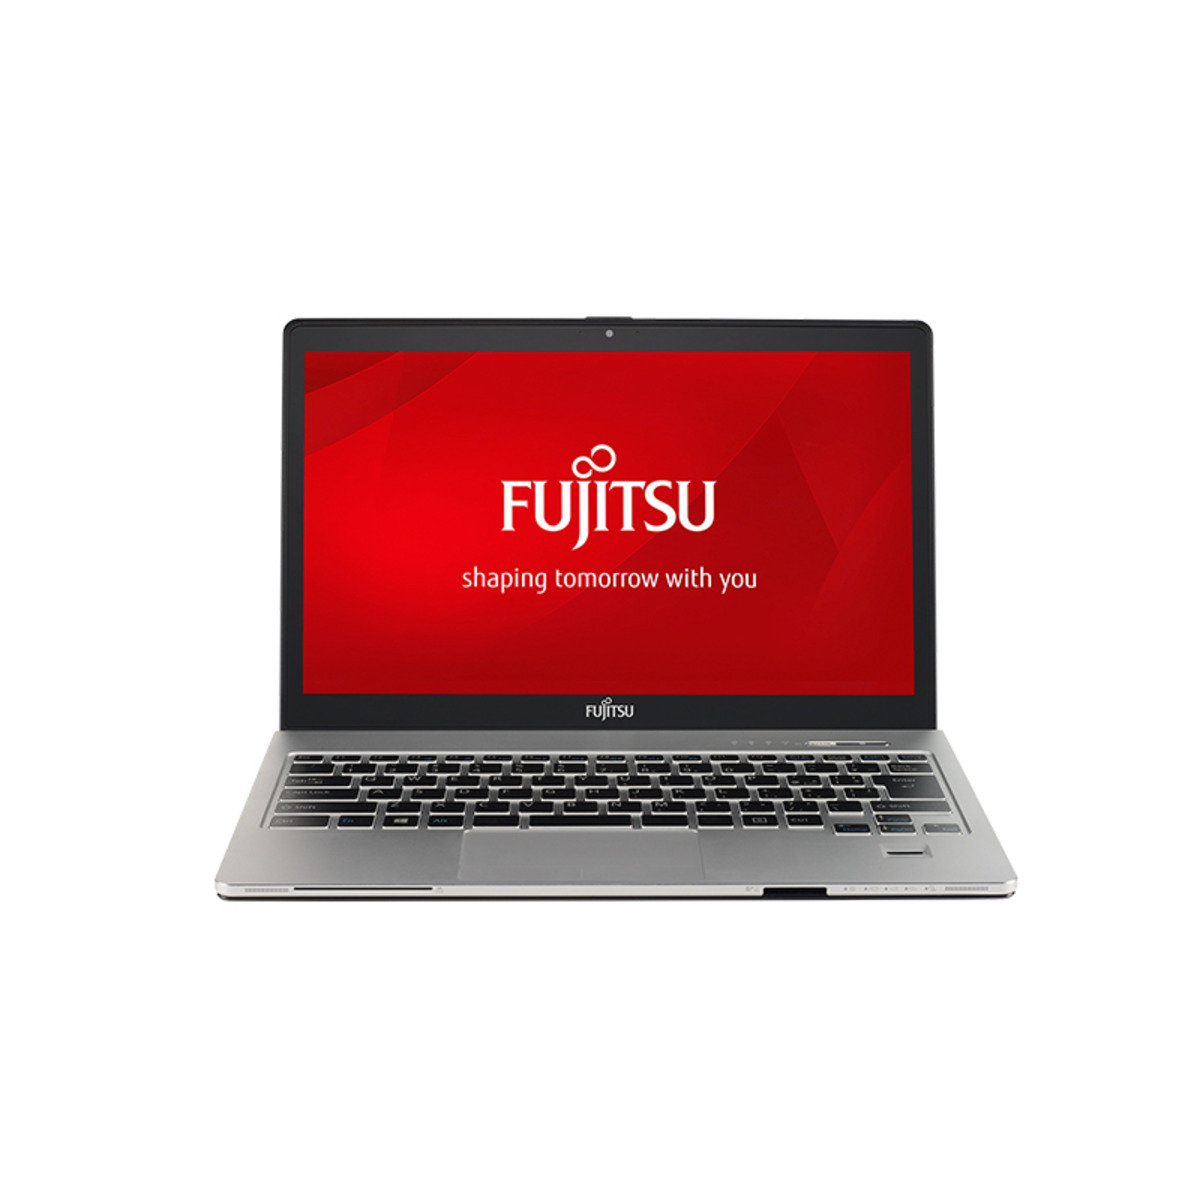 "Lifebook S904M01B 日本制造 Core  i5 Ultra Book / 13.3"" QHD / 3 Year's Warranty"